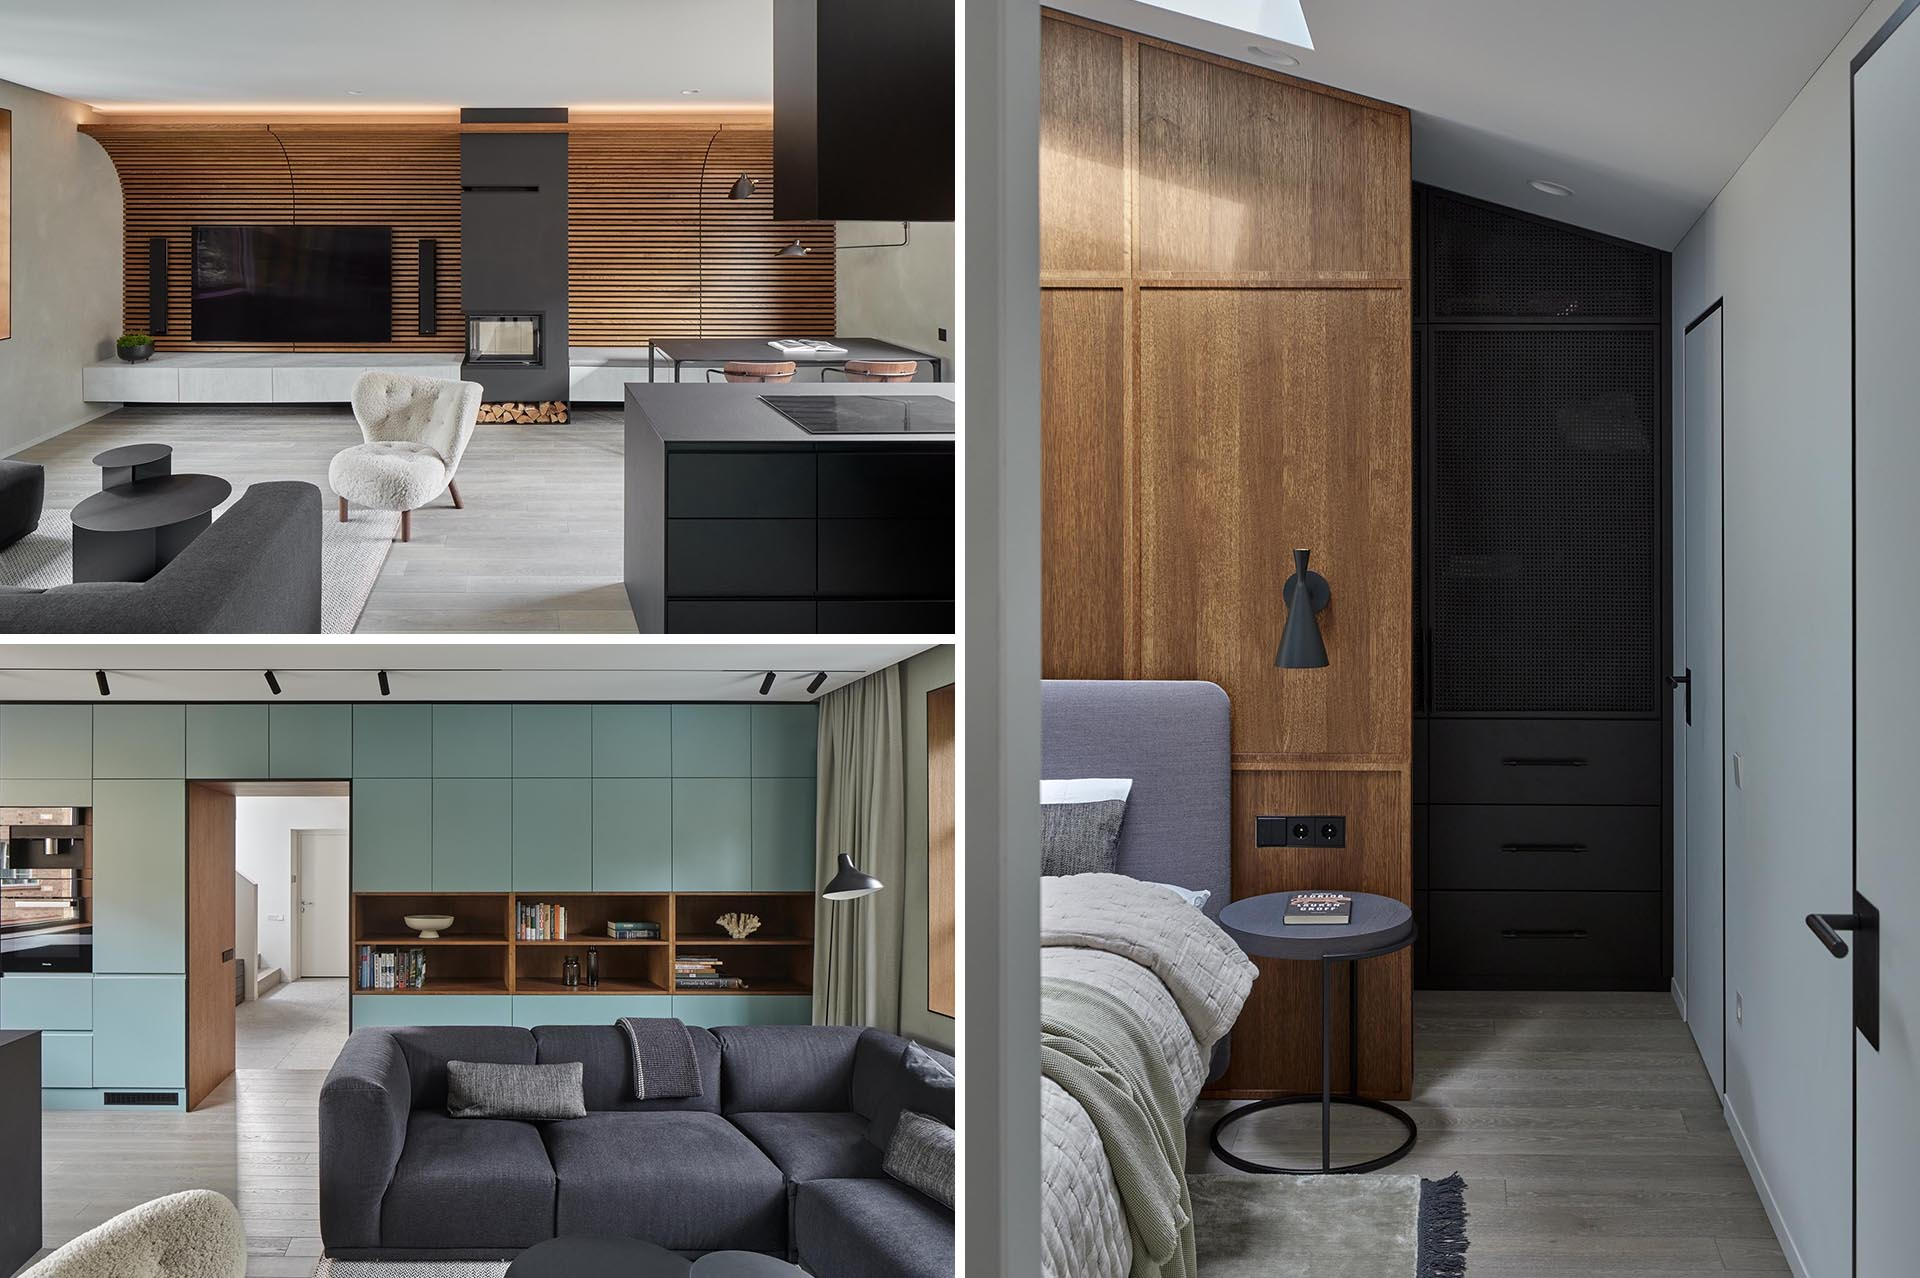 A modern home interior with a curved wood slat wall, black accents, and minimalist cabinets.